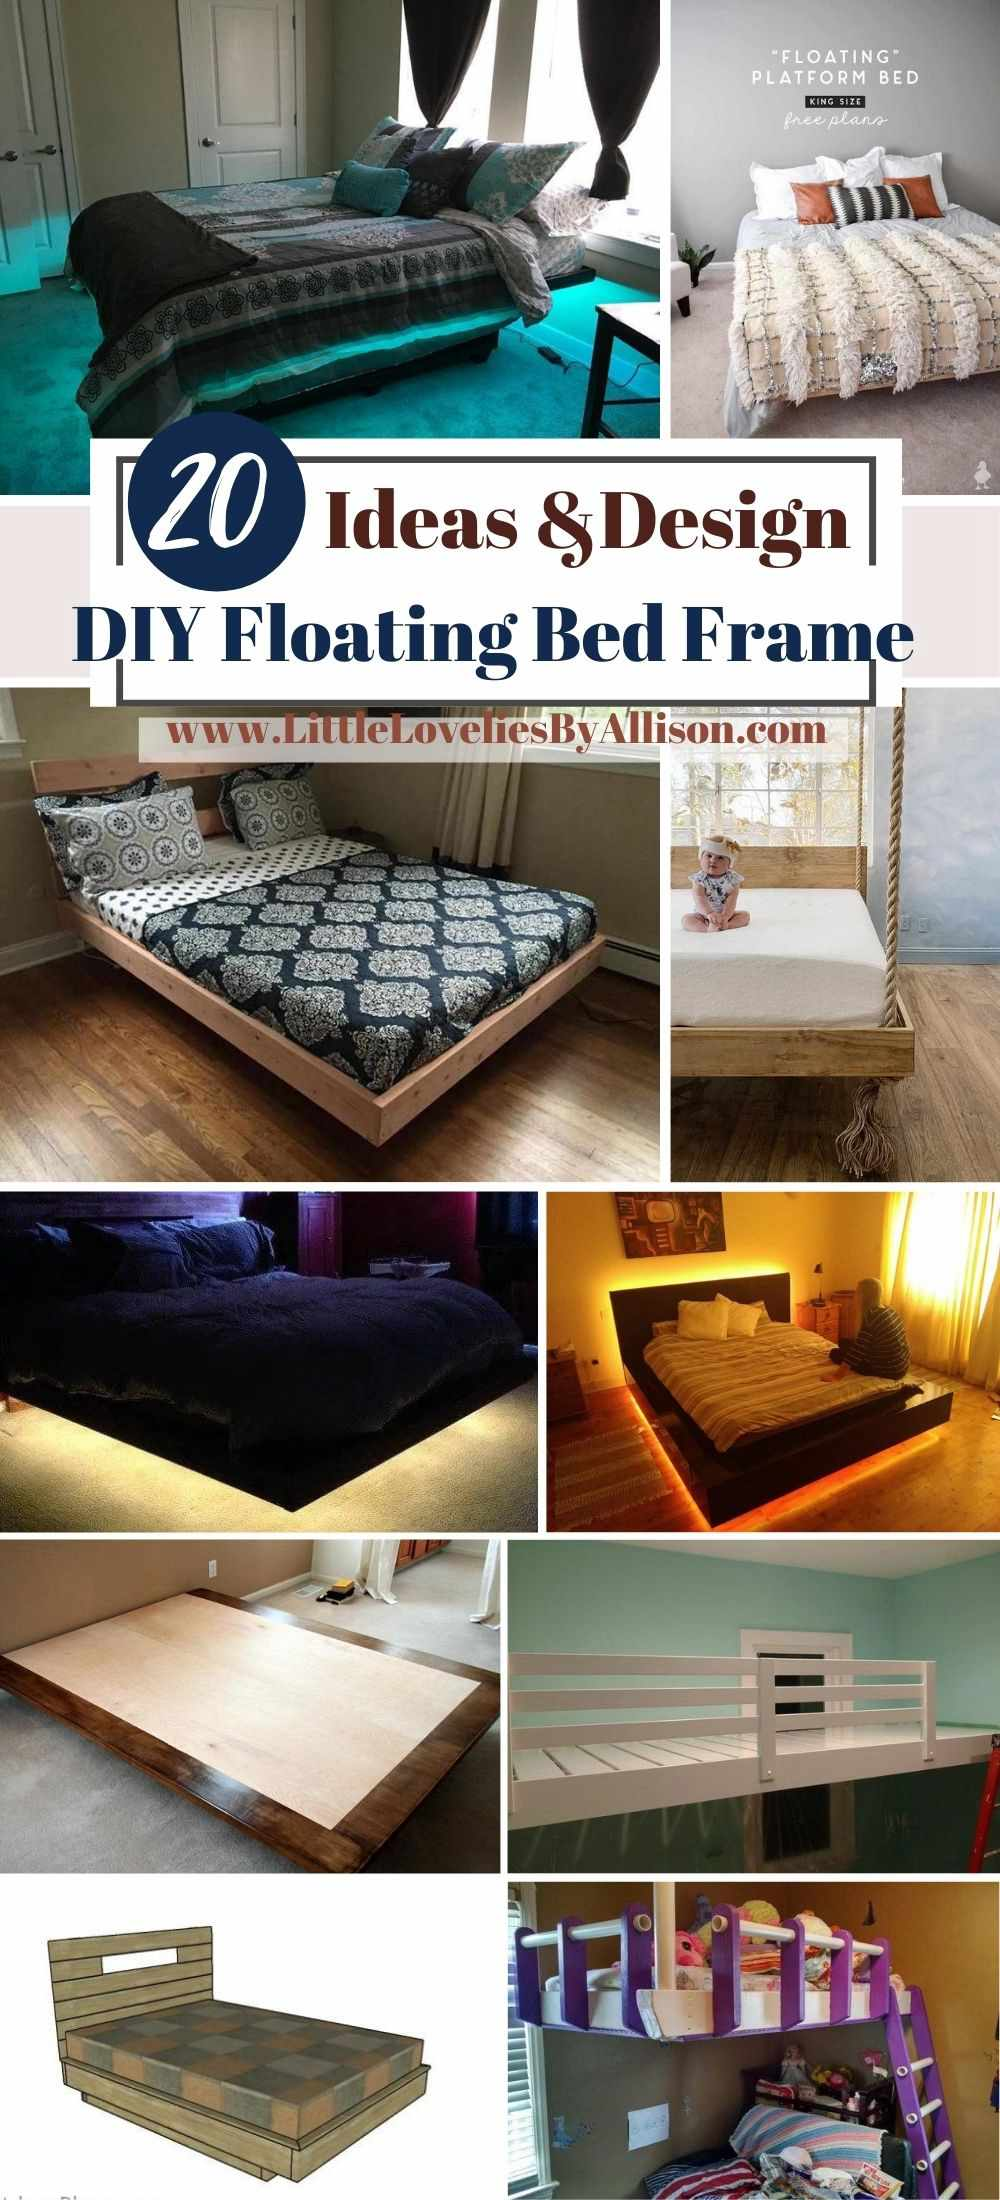 20 Ways To Build A DIY Floating Bed Frame With Ease